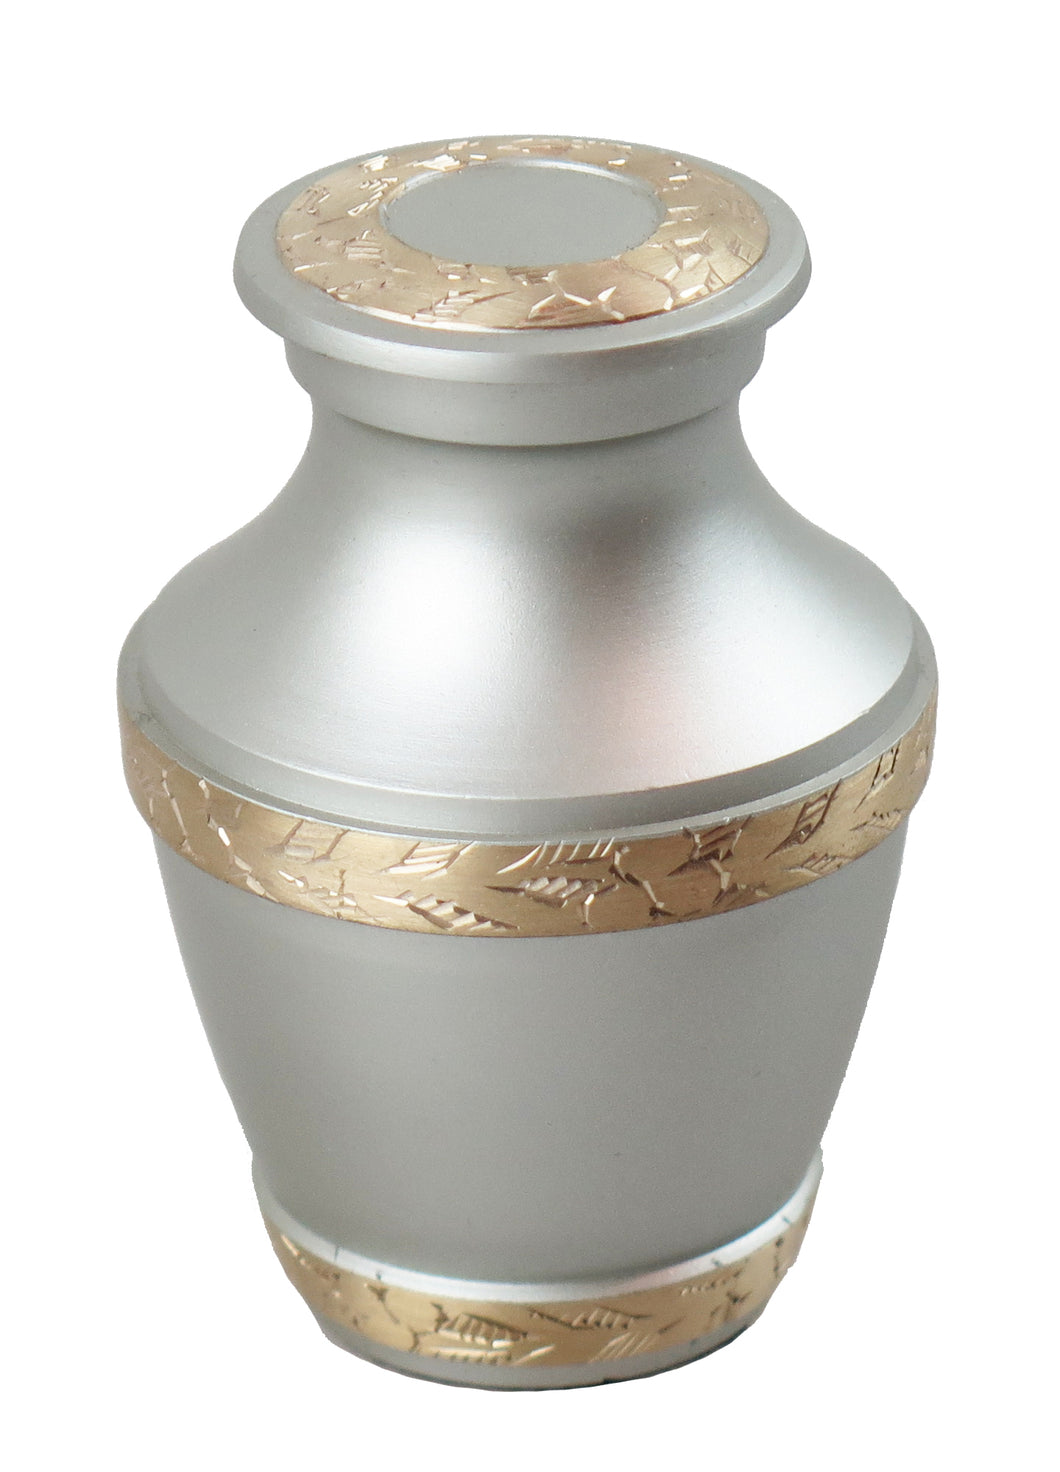 Miniature Silver and Gold Olympia Keepsake Urn